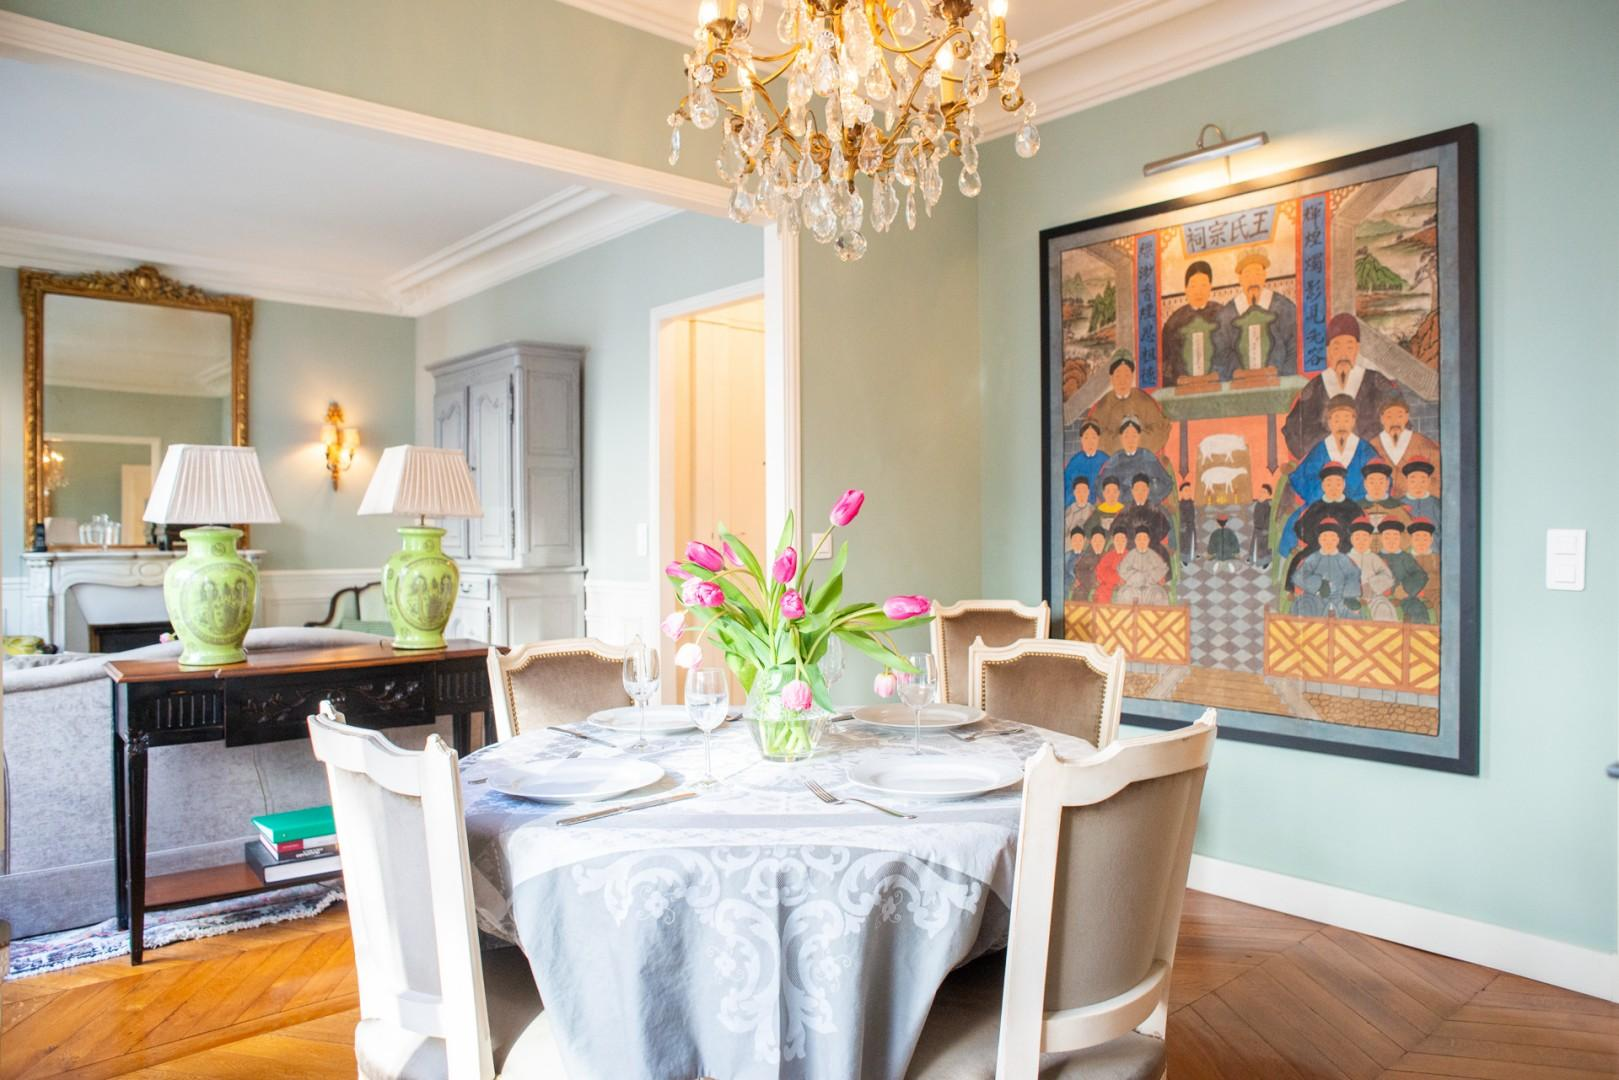 Entertain Paris-style in this beautiful dining room!